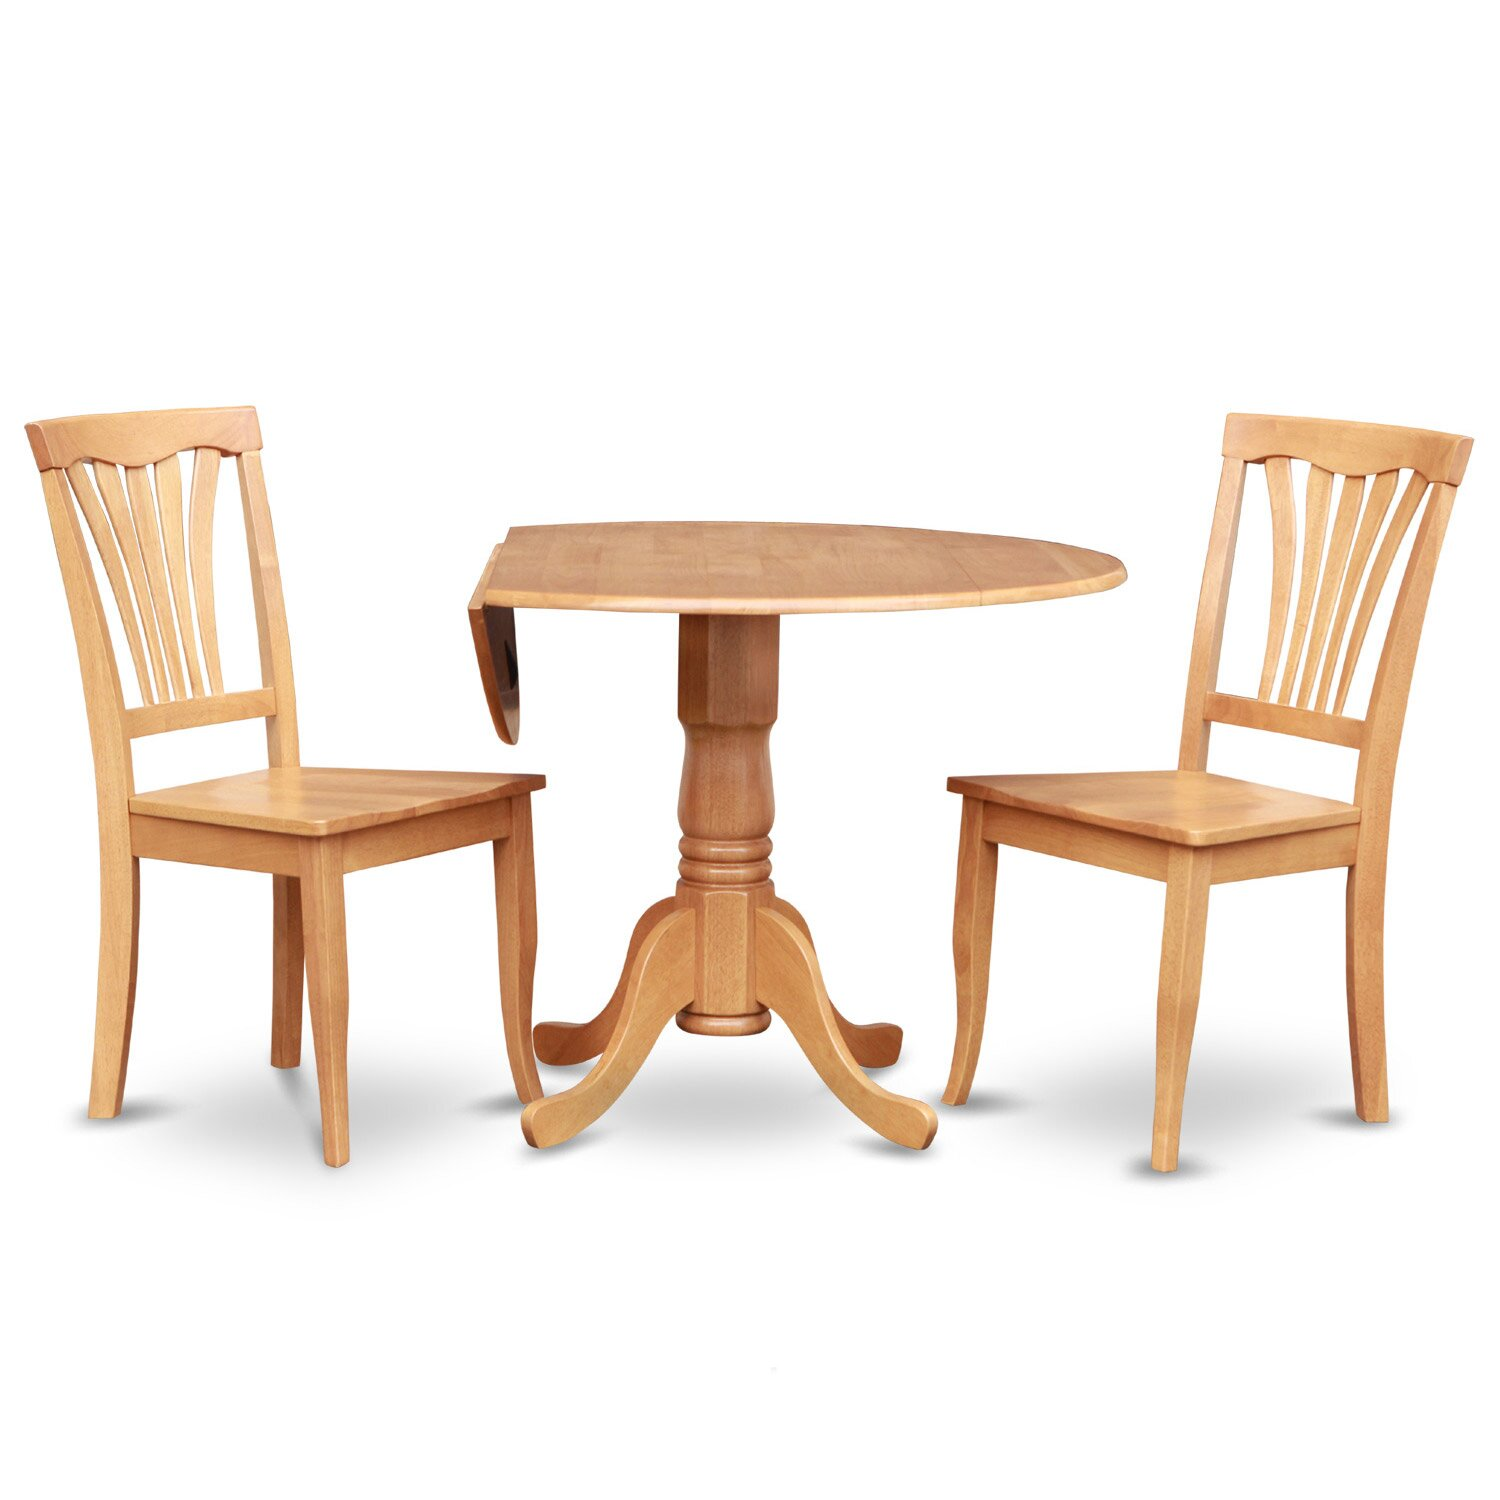 Wooden importers dublin 3 piece dining set reviews wayfair for Table and bench set